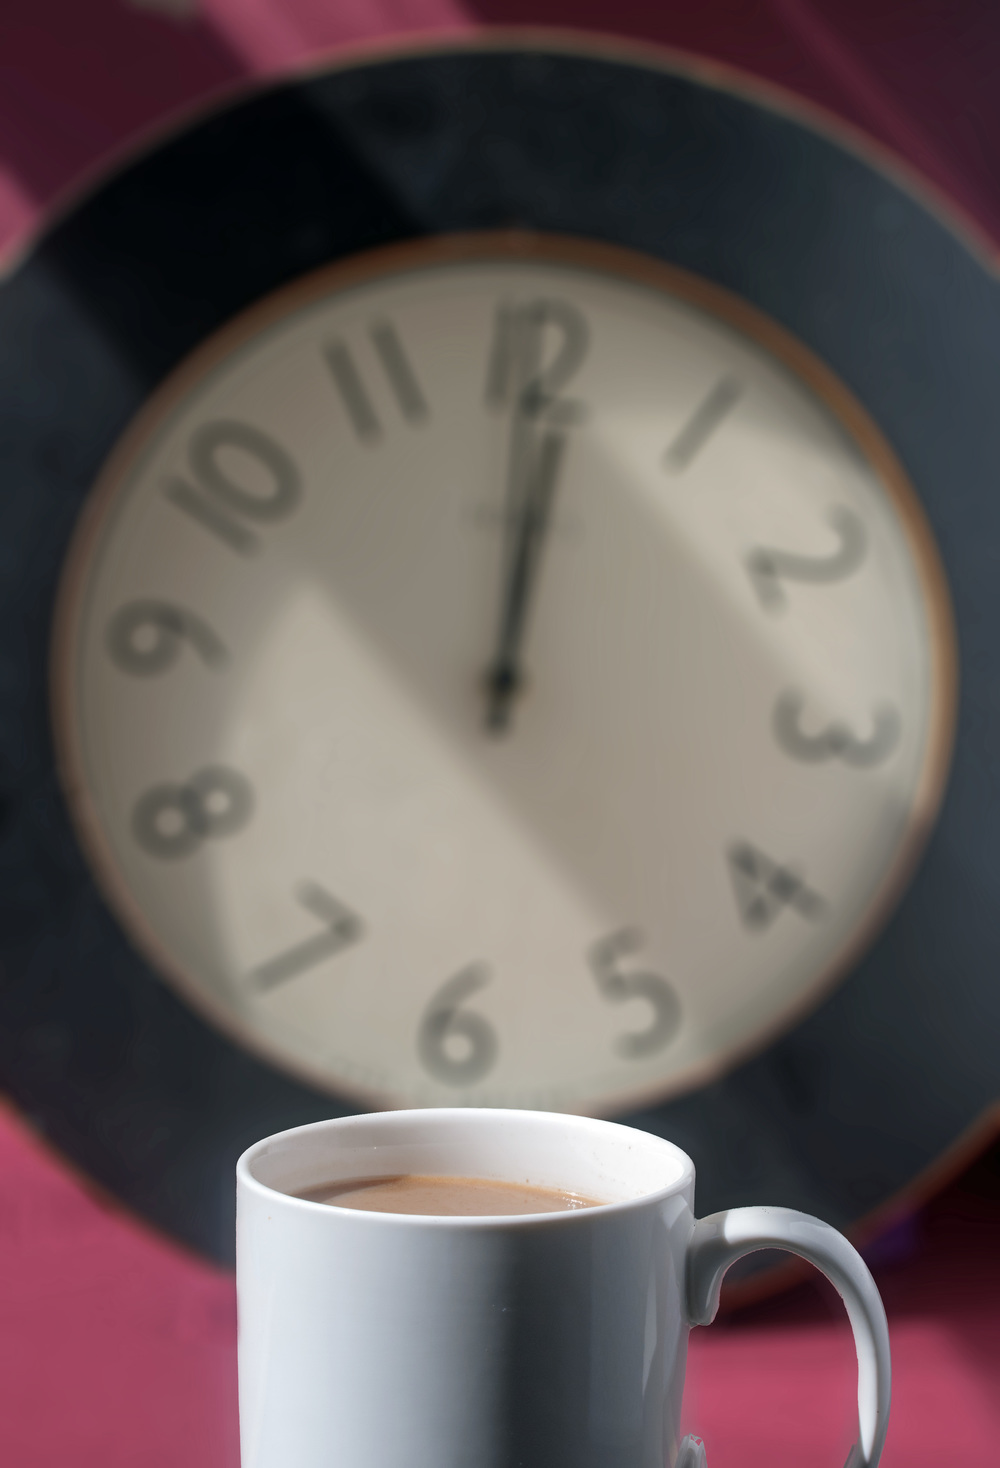 Coffee and clock.jpg